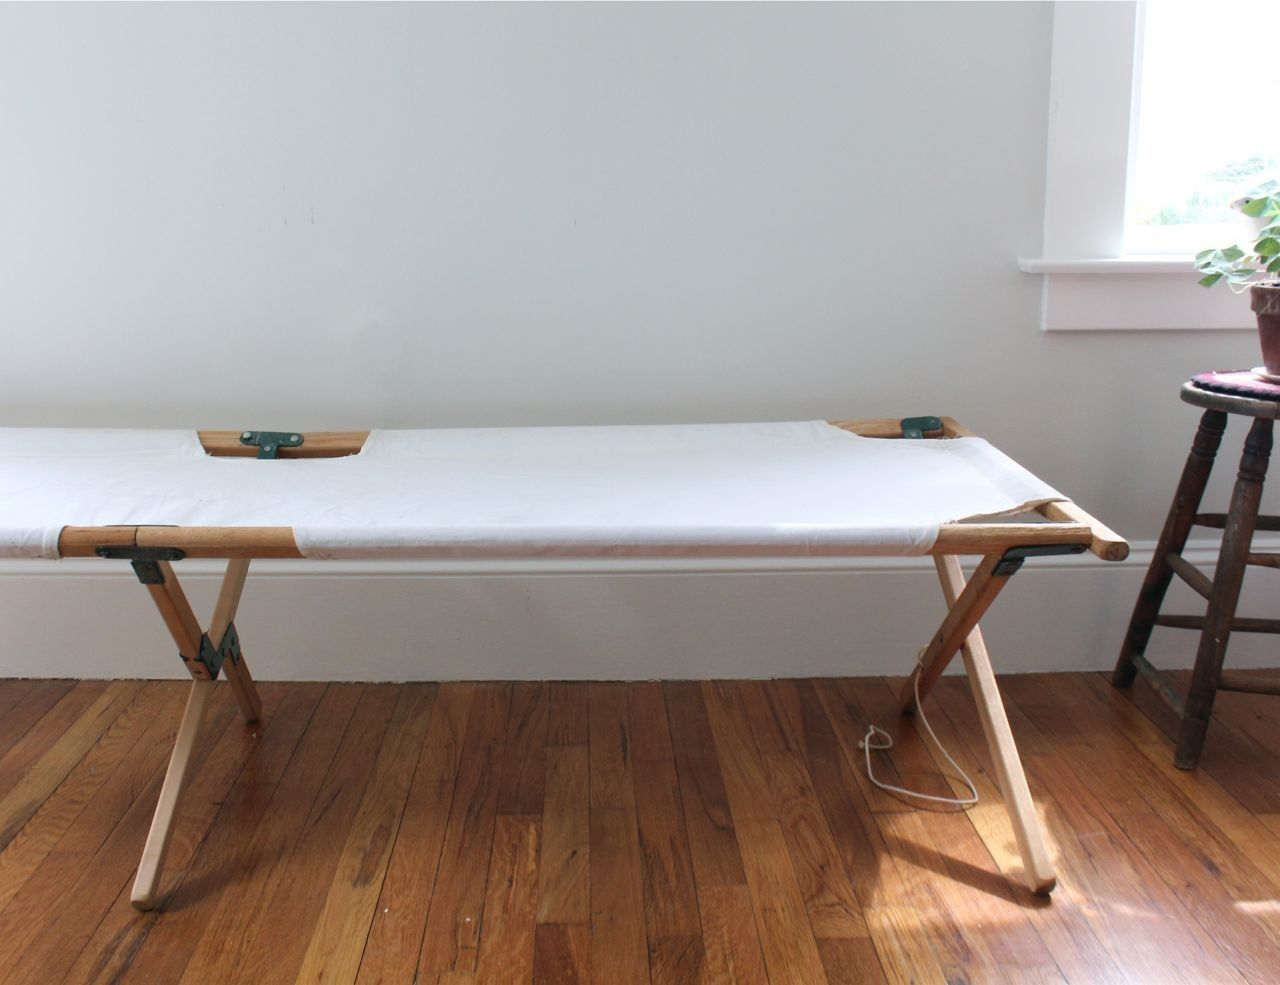 Vintage Collapsible Camp Cot / Daybed, Bench, Canvas ...